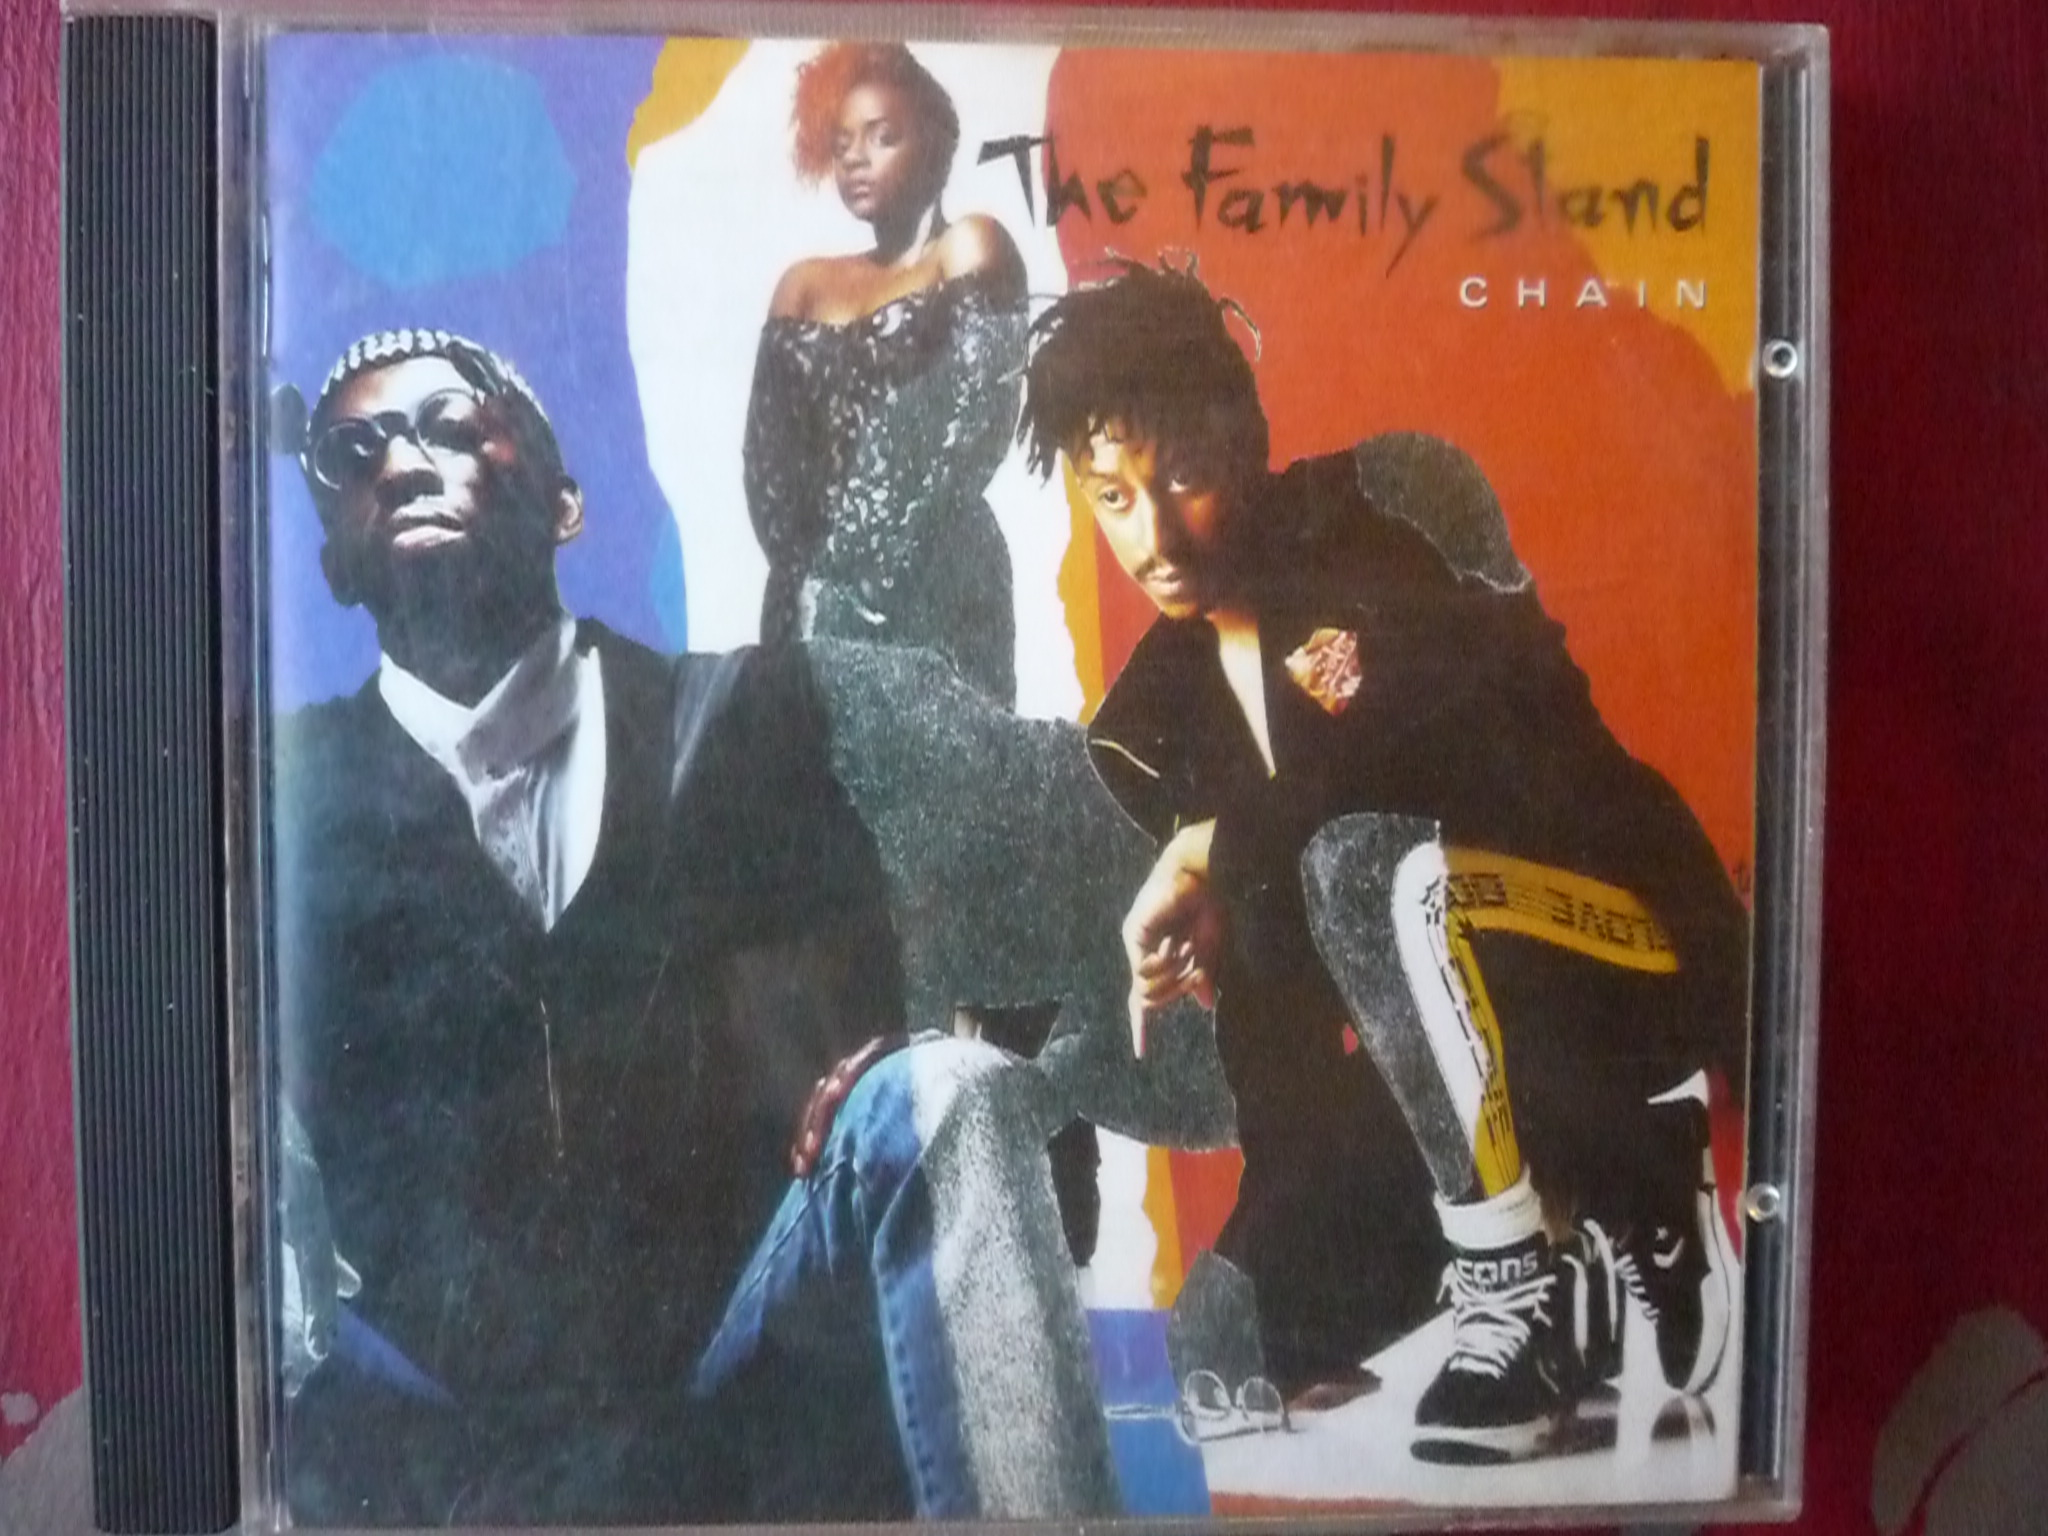 THE FAMILY STAND CHAIN CD